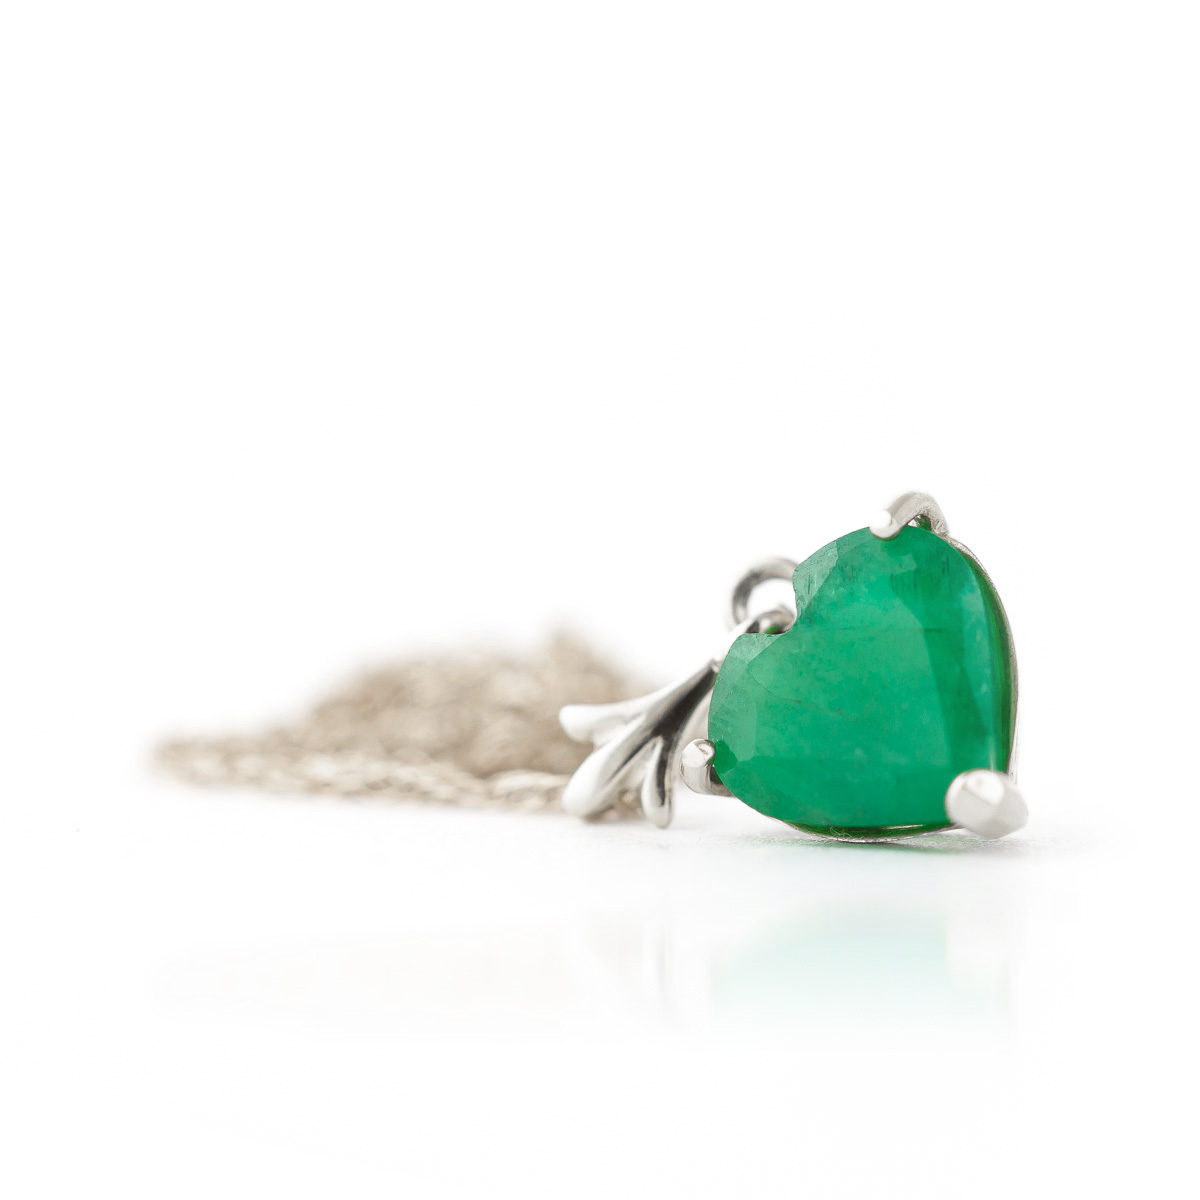 Emerald heart pendant necklace 12ct in 9ct white gold 4184w emerald heart pendant necklace 12ct in 9ct white gold aloadofball Images